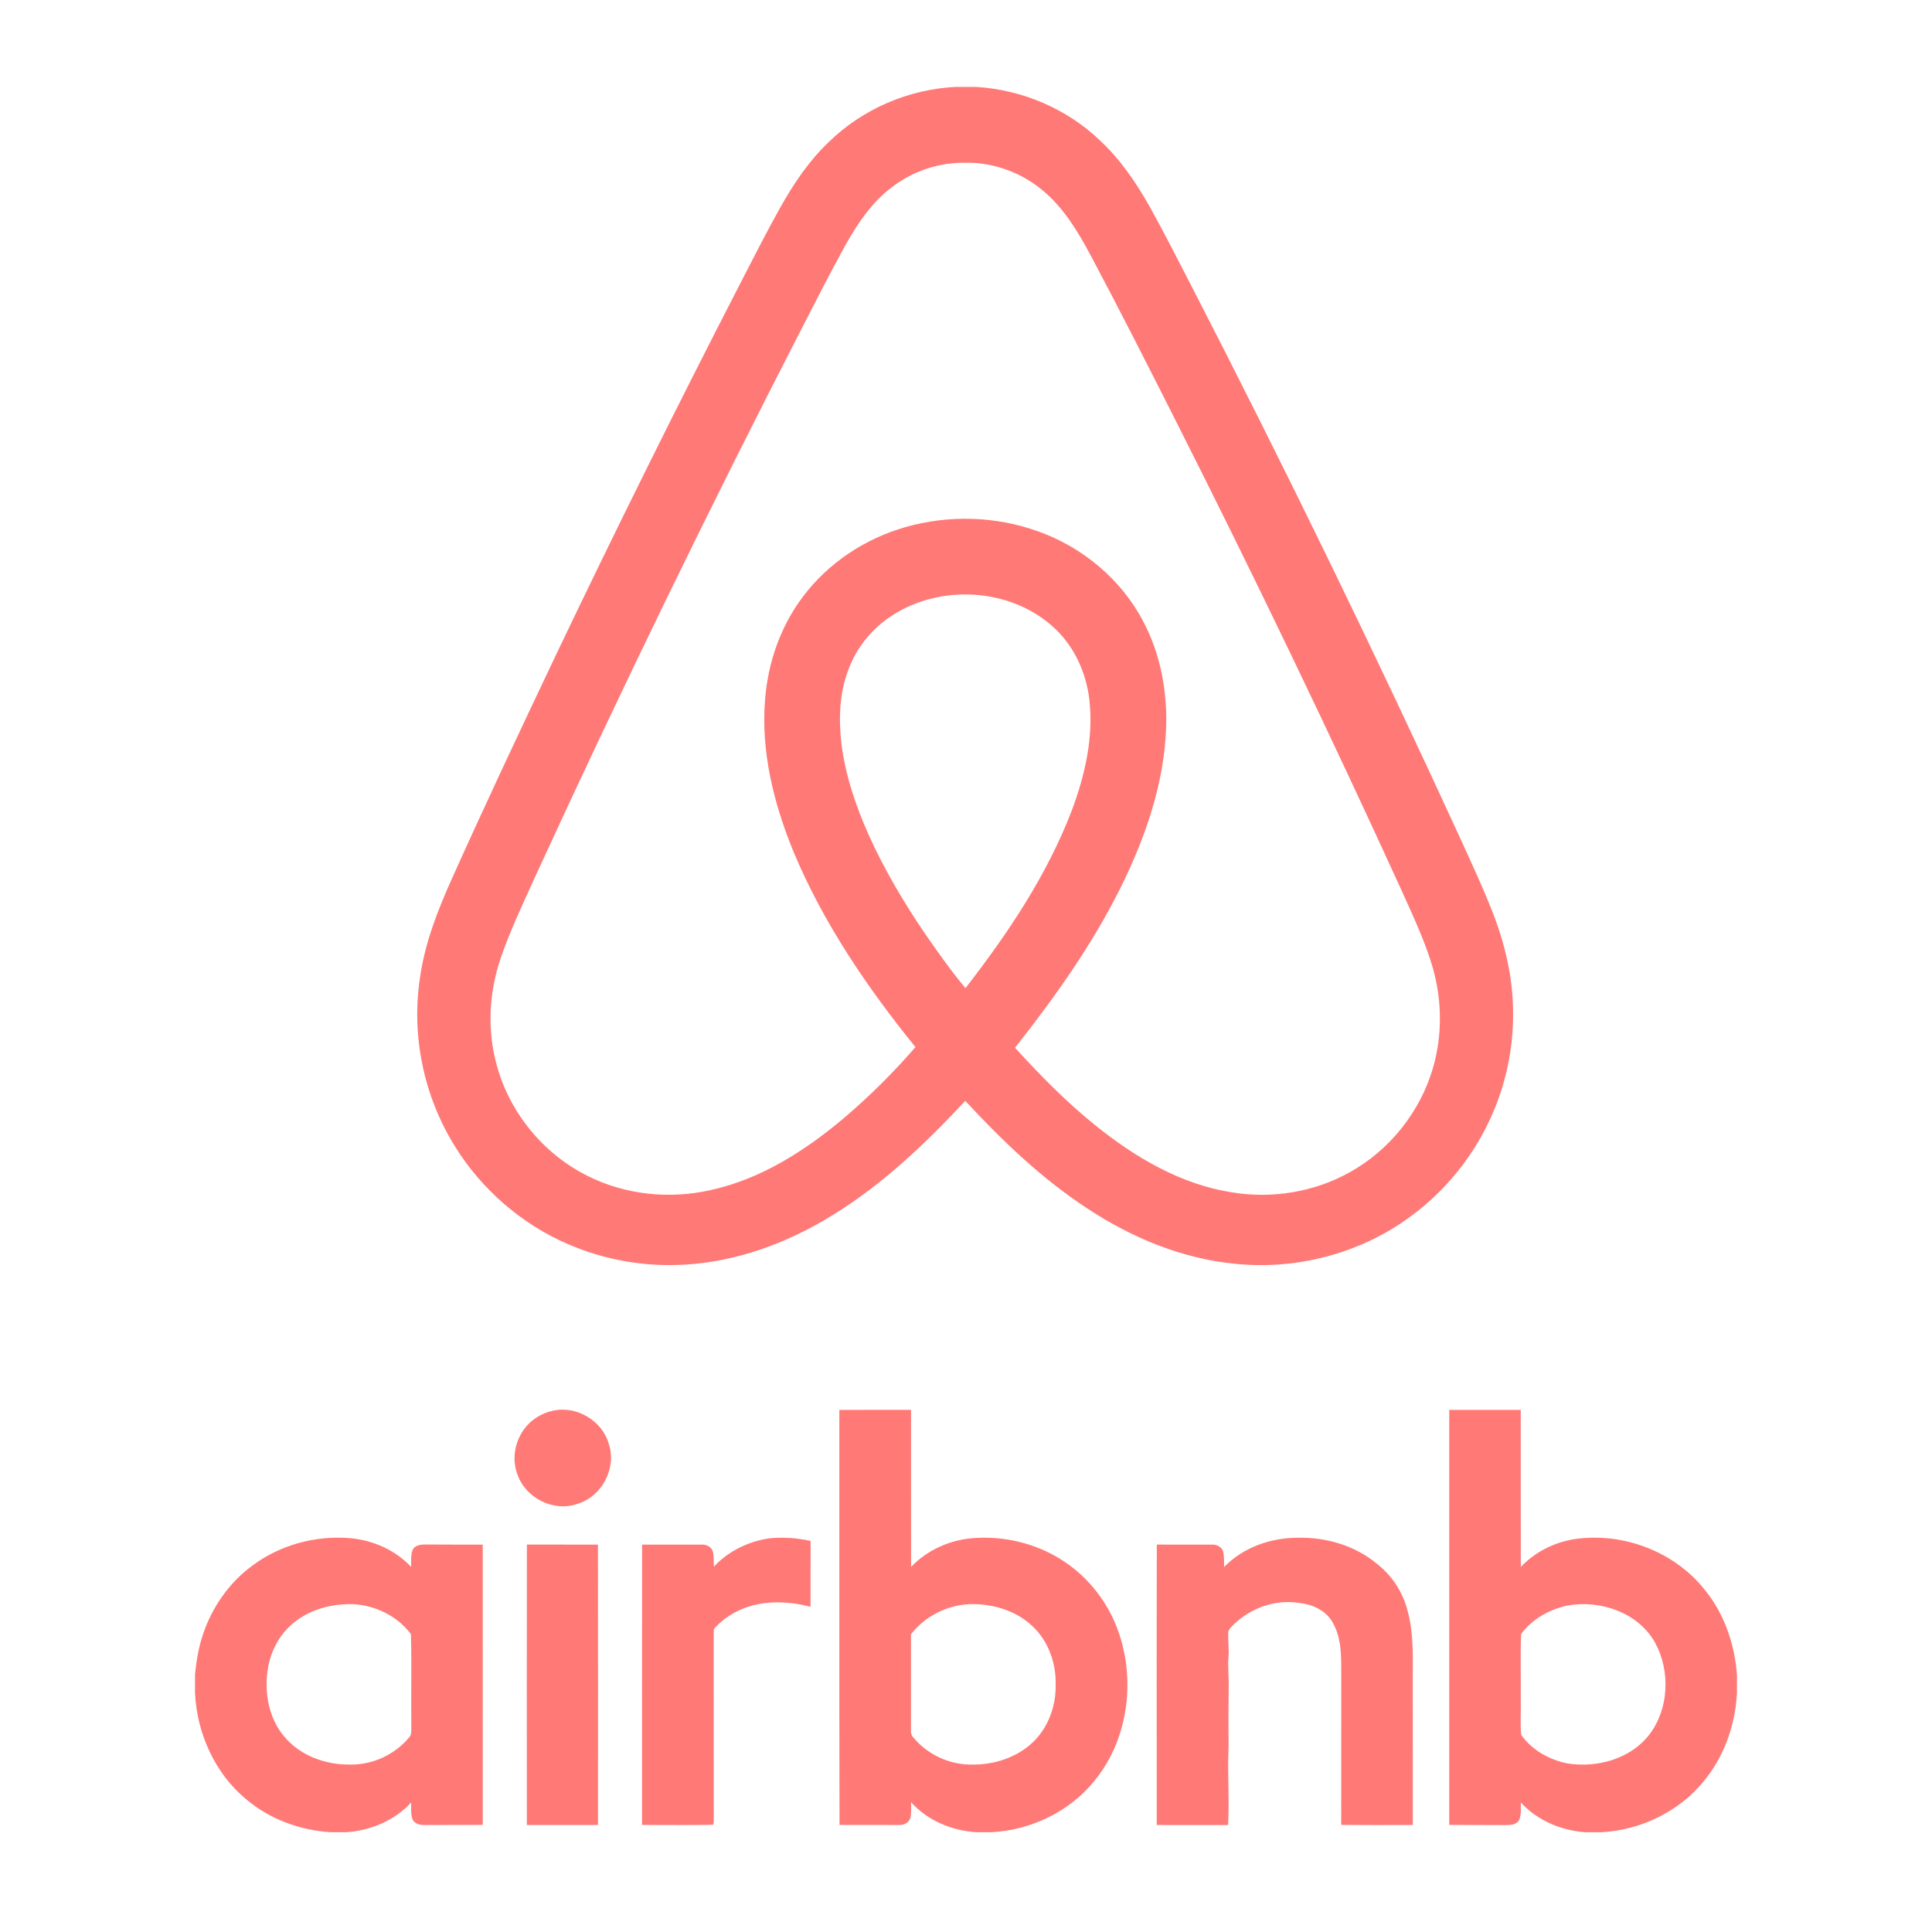 1499955328airbnb-2-logo-png.png